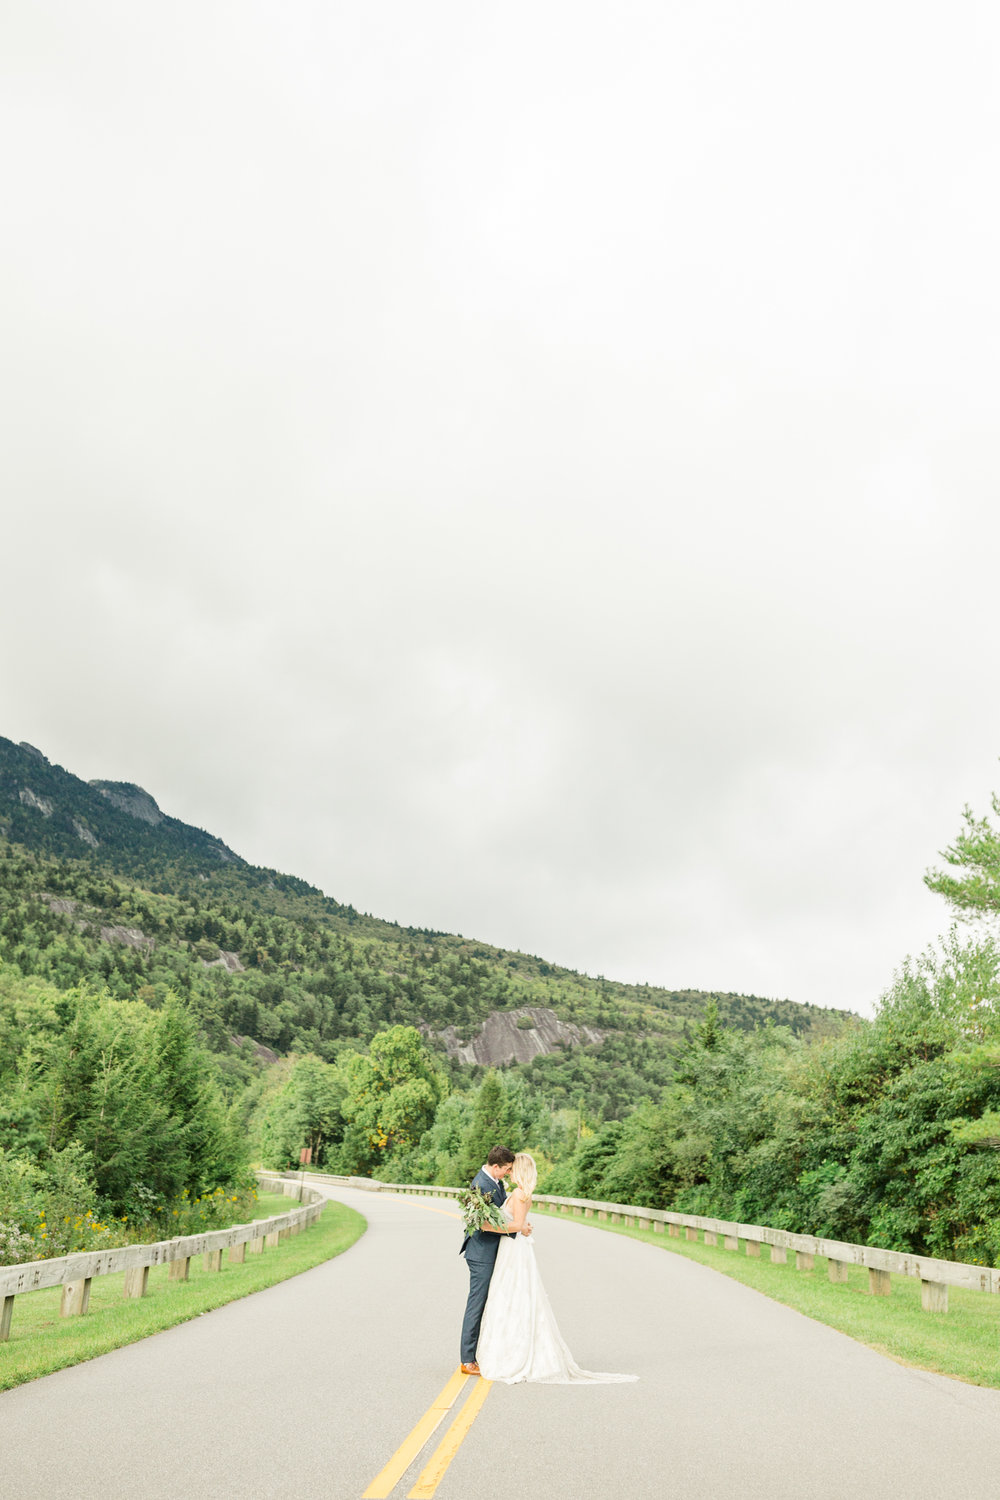 Country Road Take Me Home - Christa Norman Photography-52.jpg